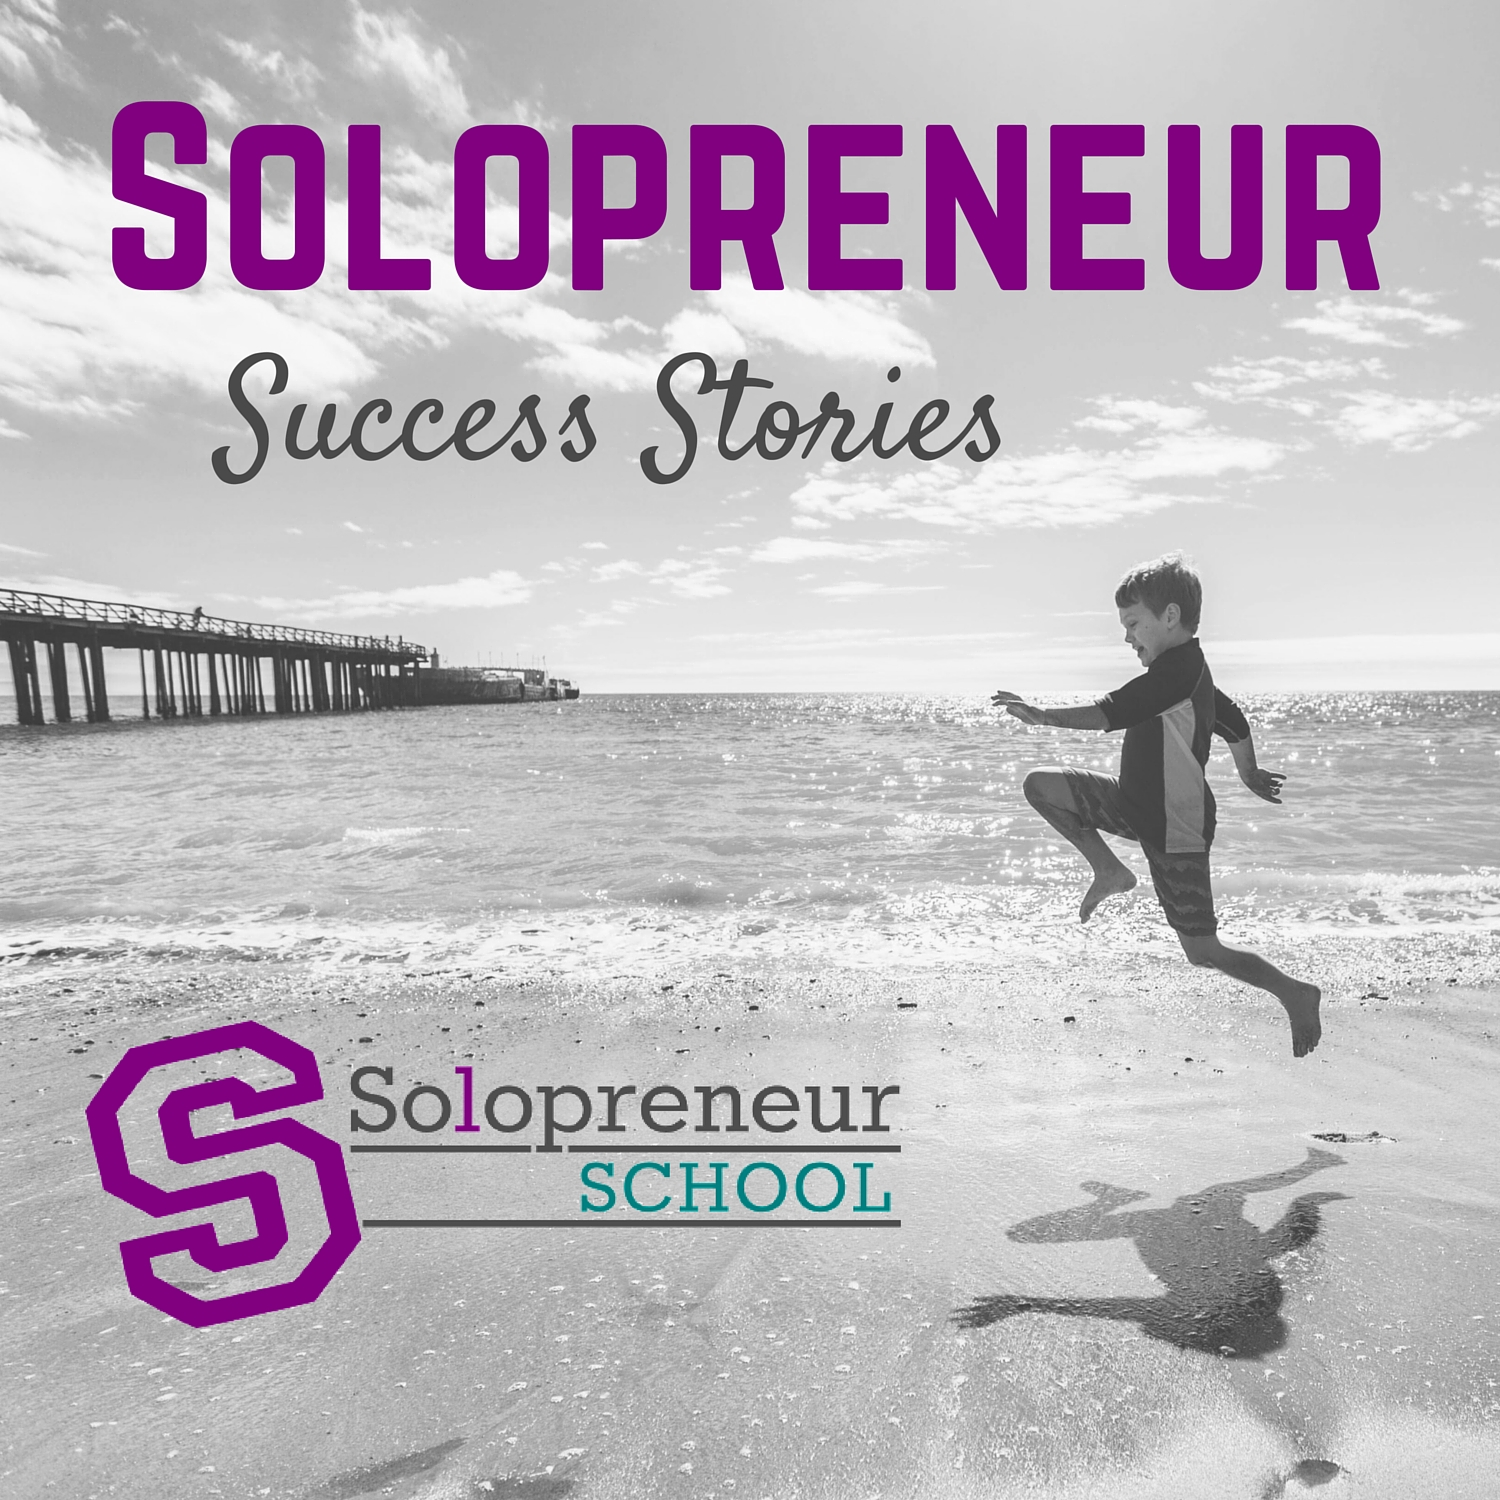 Solopreneur Success Stories